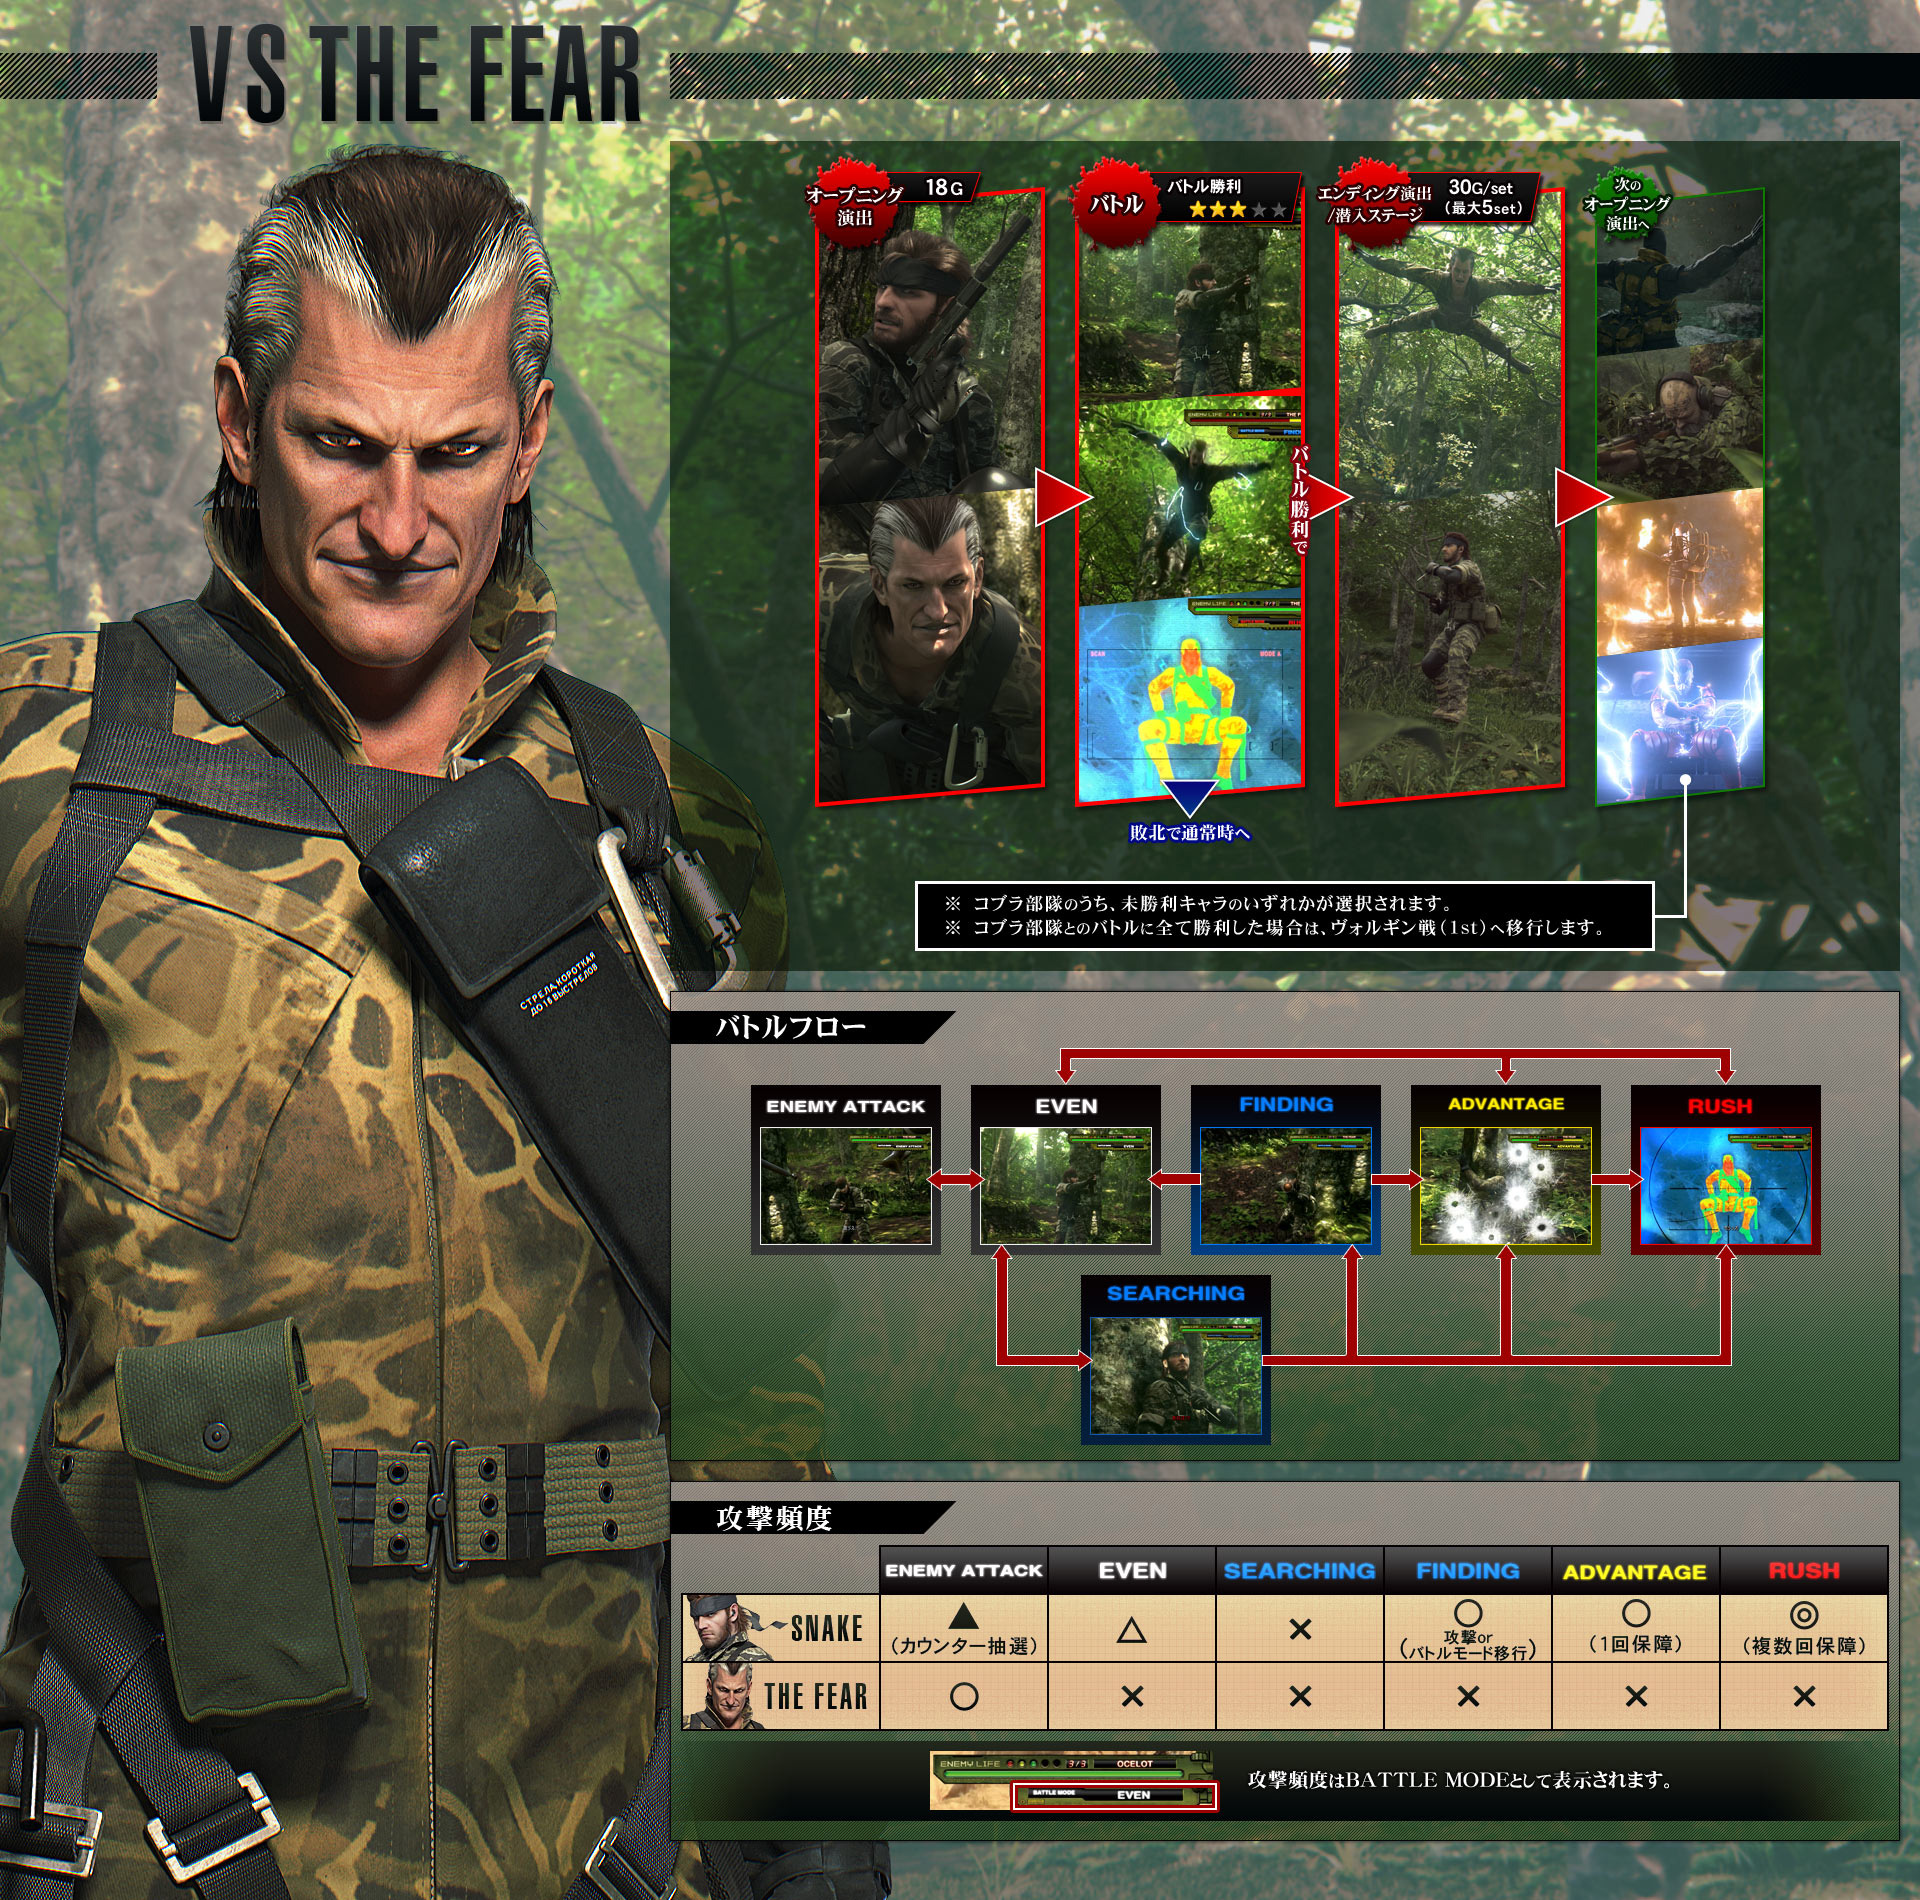 metal-gear-solid-snake-eater-pachislot-art-the-fear-battle